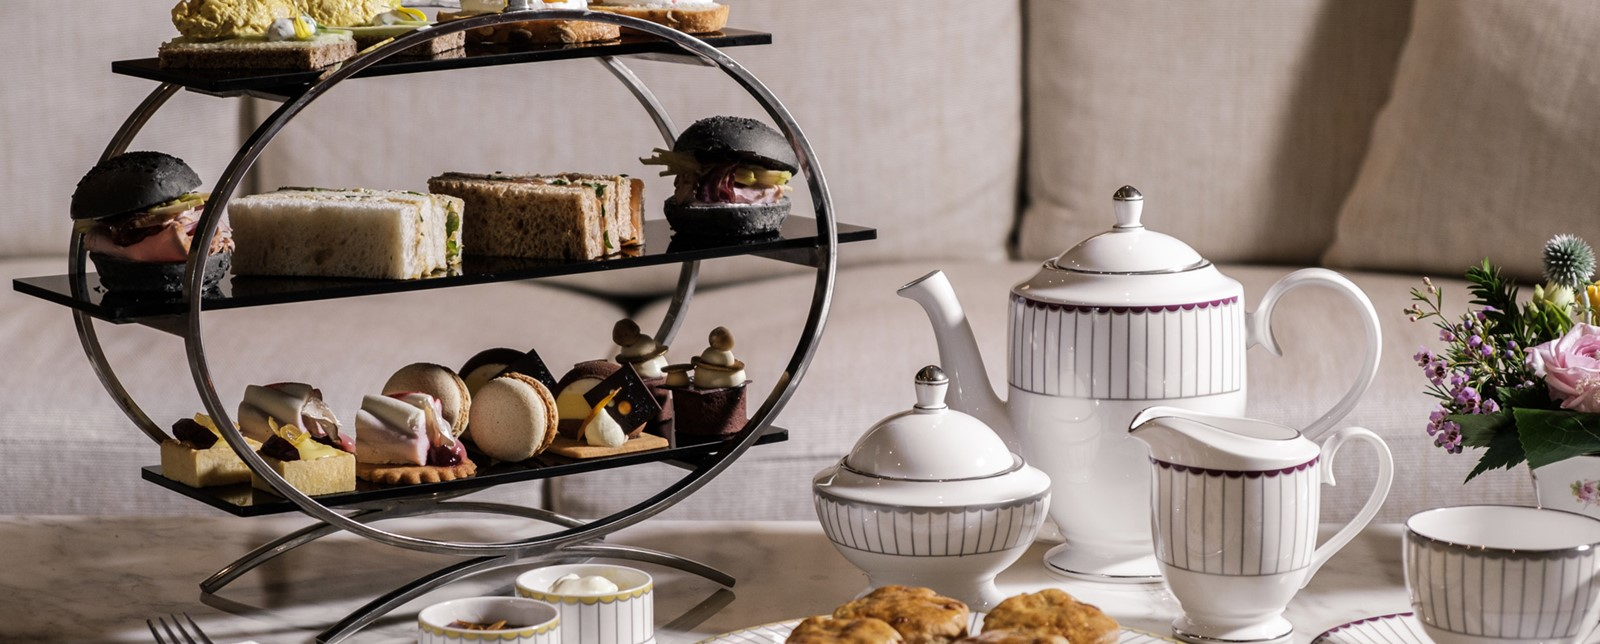 Corinthia Palace Afternoon tea